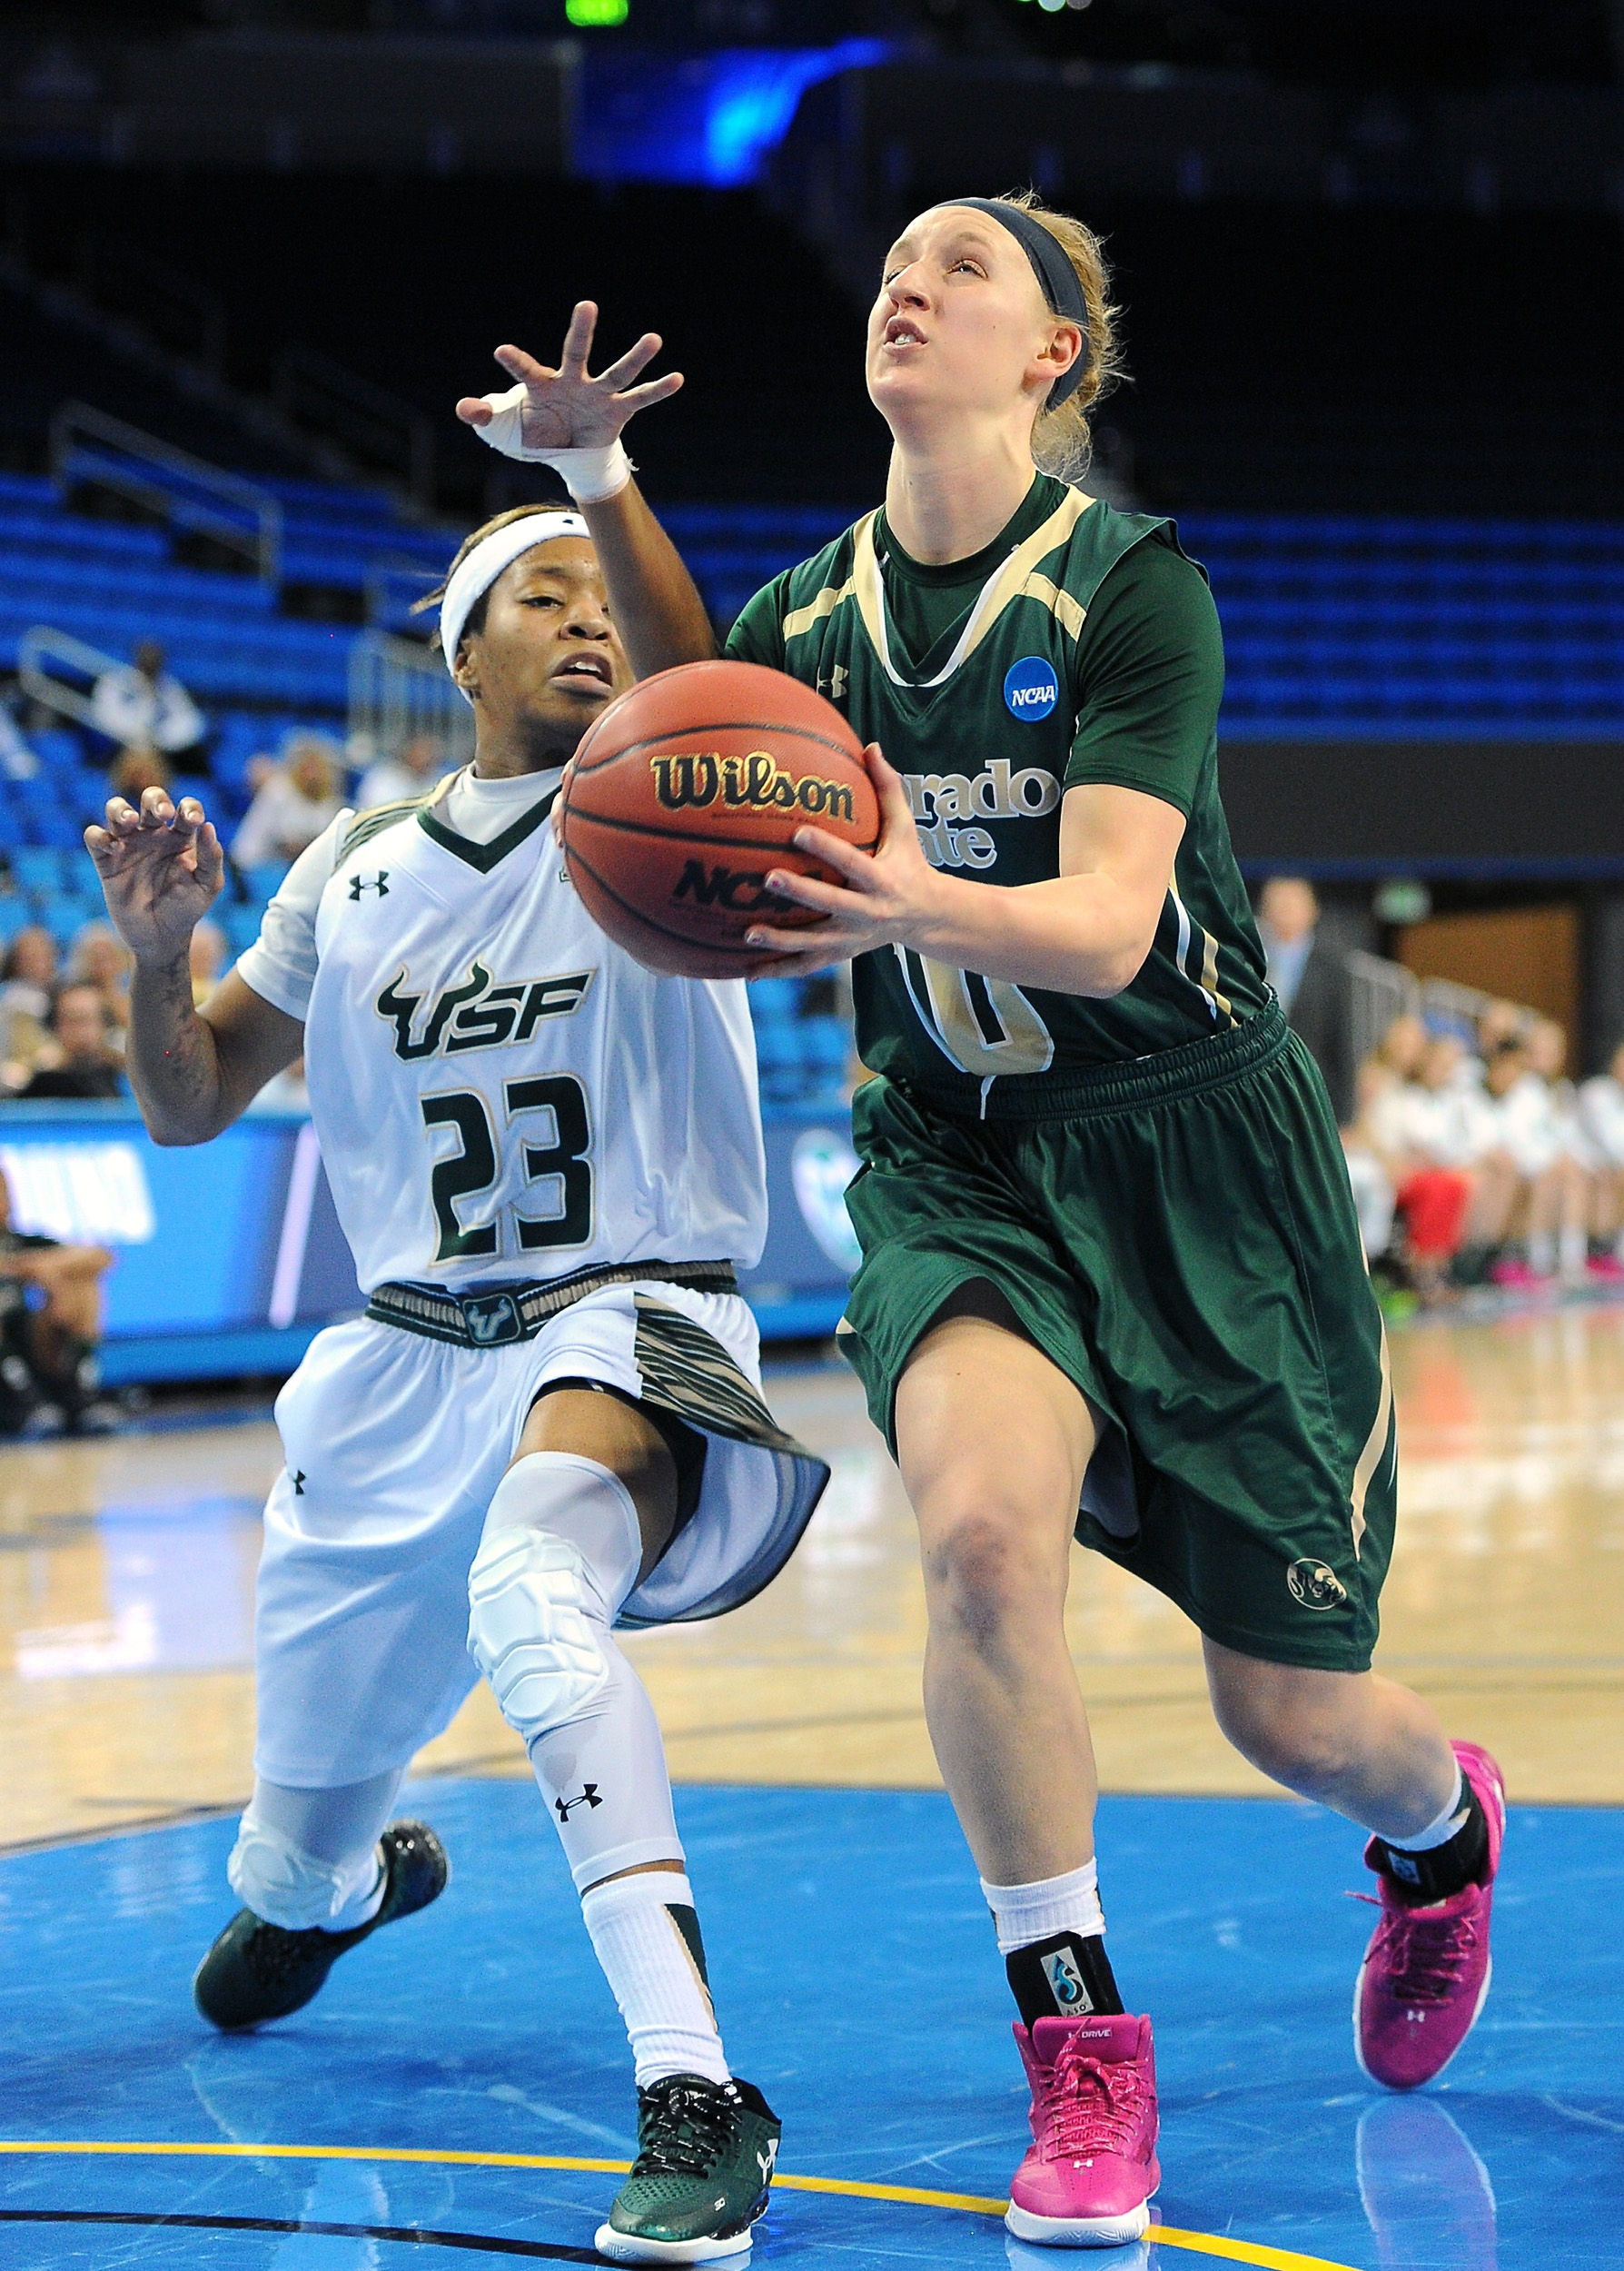 Colorado State's Hannah Tvrdy (10) drives on South Florida's Shalethia Stringfield (23) during a first-round women's college basketball game in the NCAA Tournament in Los Angeles, Saturday, March 19, 2016. (AP Photo/Michael Owen Baker)